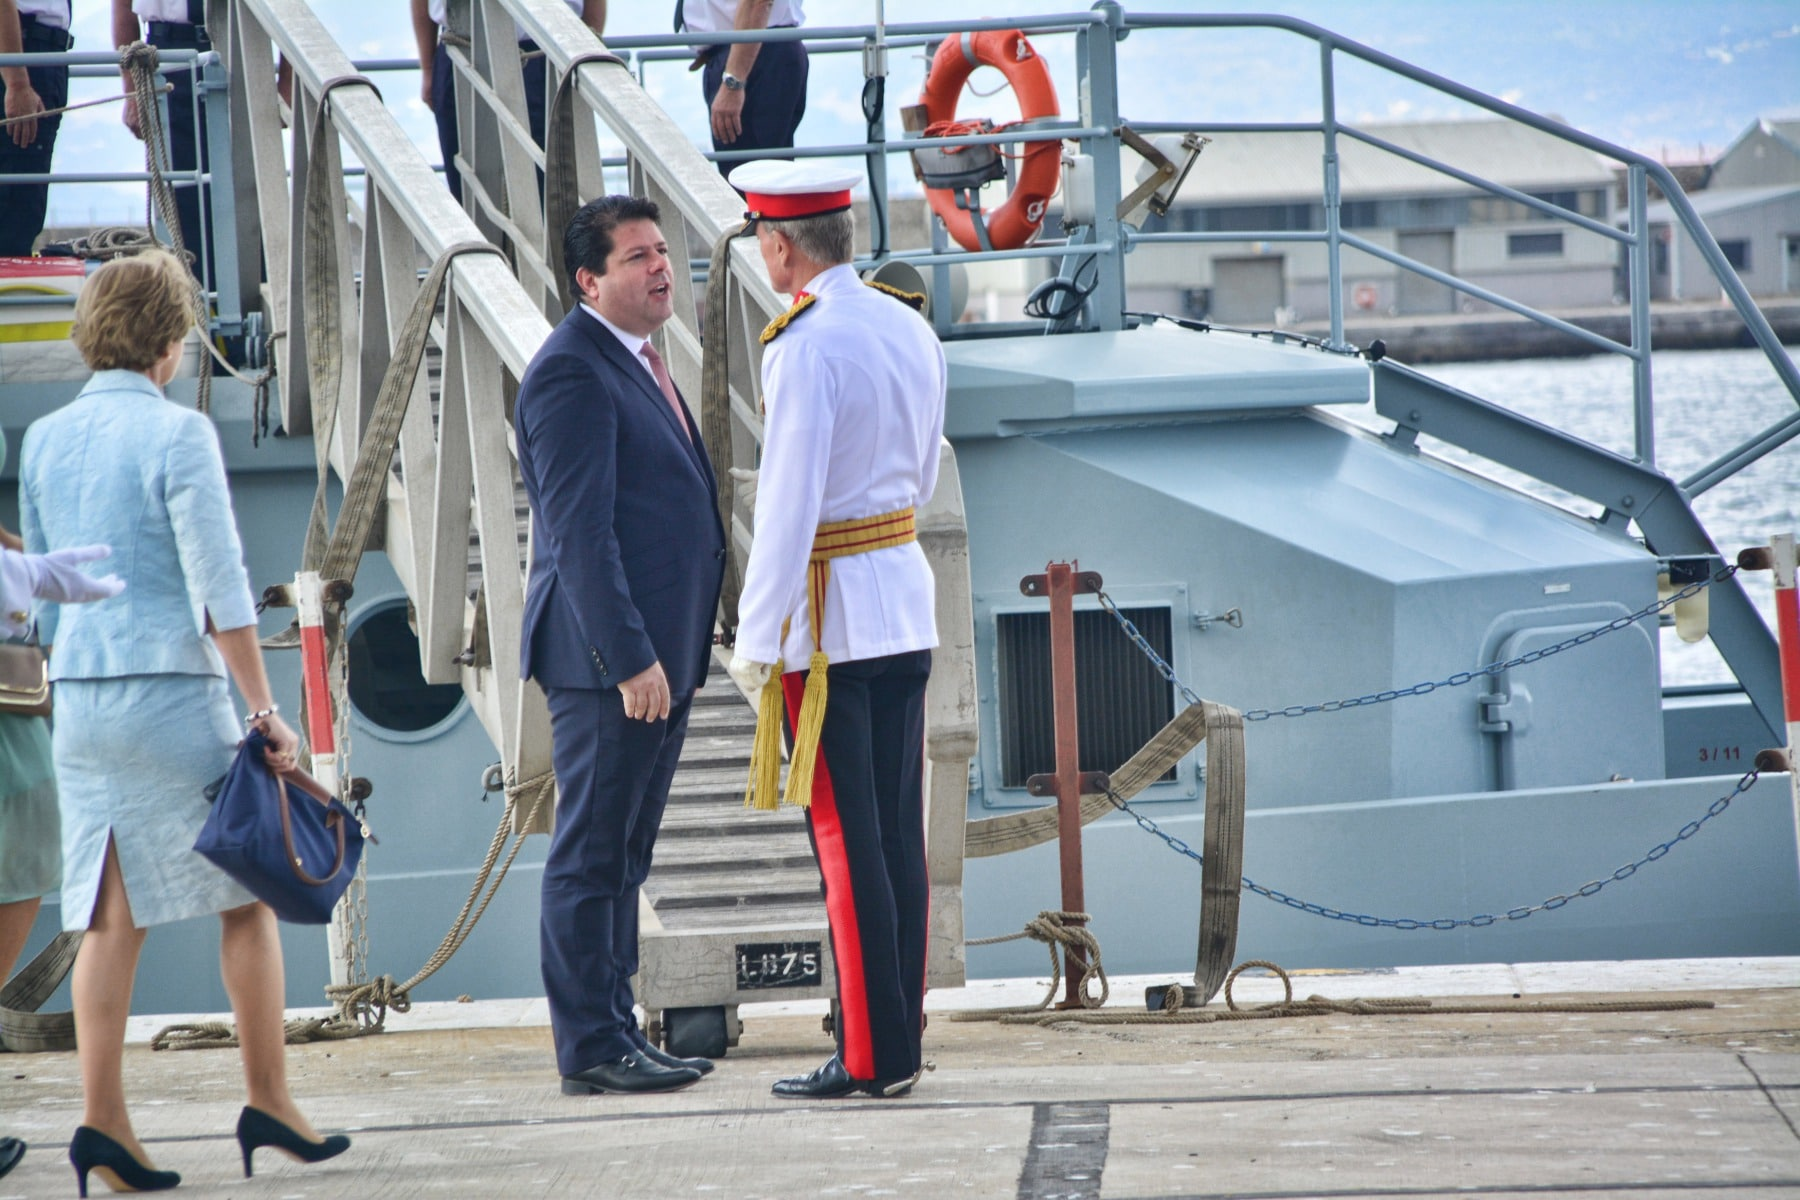 Gibraltar -28th September 2015 - The Governor of Gibraltar today departed From office bidding Farewell to politicians and the armed Forces in what ended up to be a low Key ceremony. A short farewell ceremony at the Parliament lobby was followed by a quick farewell at the city Hall, defer he inspected troops at the Naval Base. He then boarded HMC Seeker where a 17 gun salute bid him farrwell.